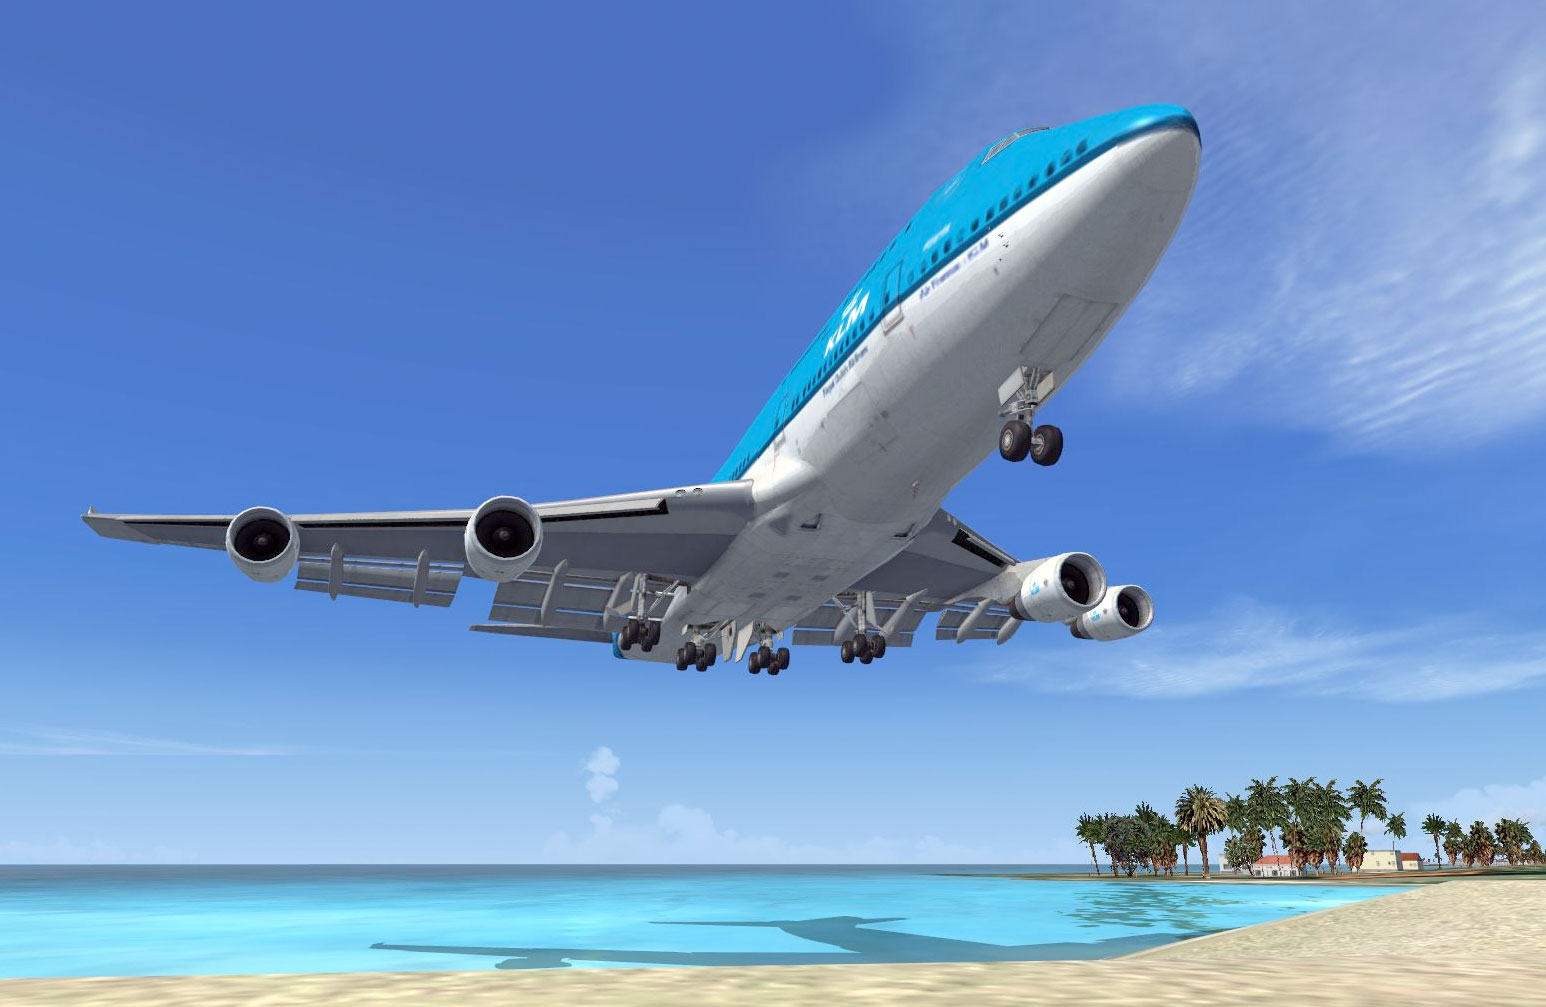 Microsoft Flight Simulator X Free Download - Ocean Of Games